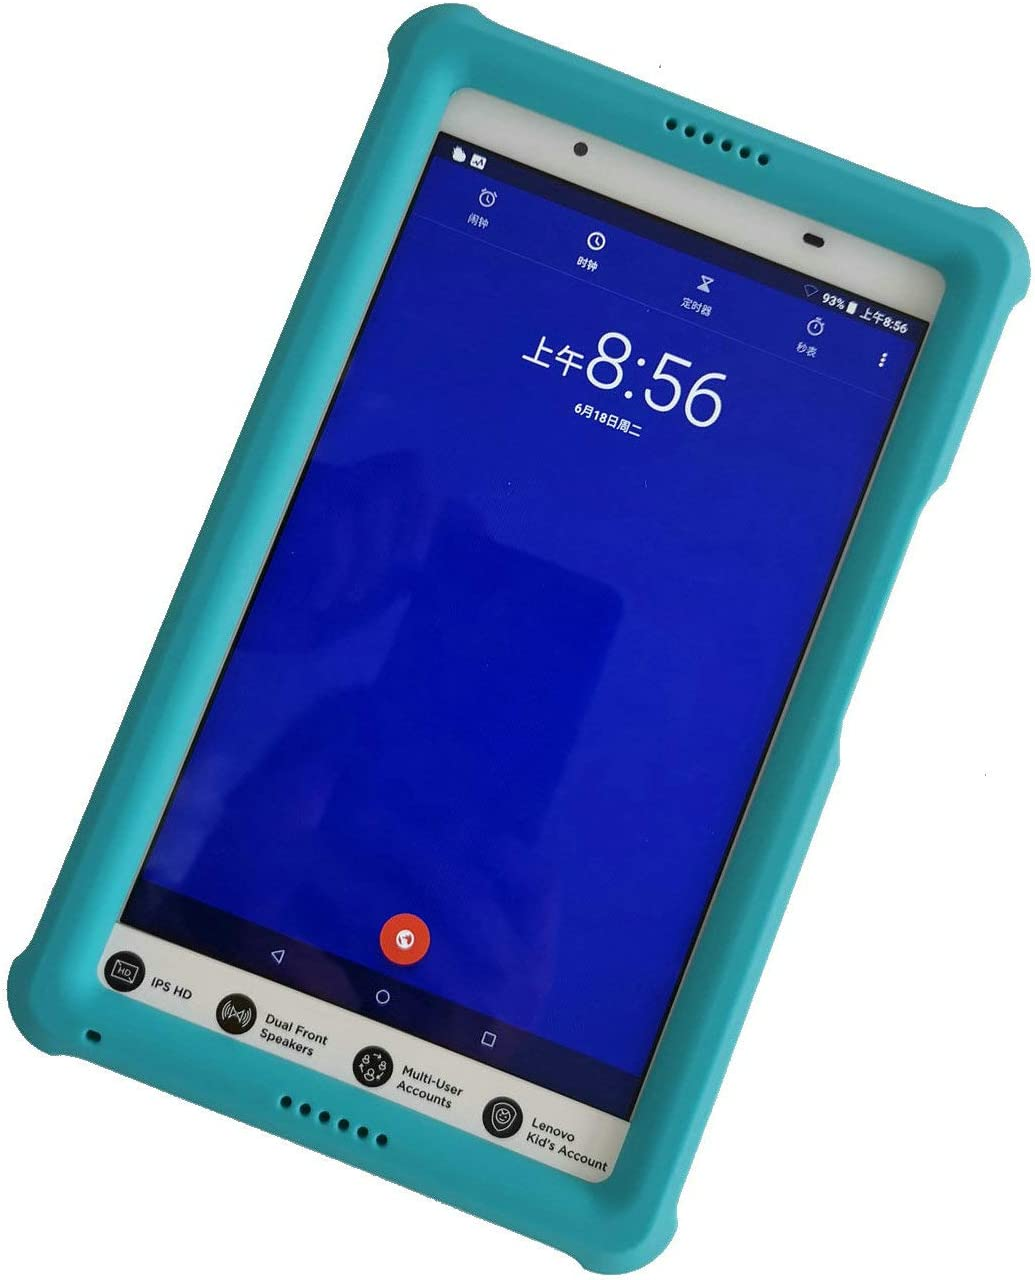 "MingShore Rugged Case Compatible for Lenovo Tab 4 8 inch TB-8504F TB-8504X, Kid Friendly Protective Silicone Heavy Duty Cover for Fit Lenovo Tab 4 8"" HD Android Tablet 2017 Release (Turquoise)"